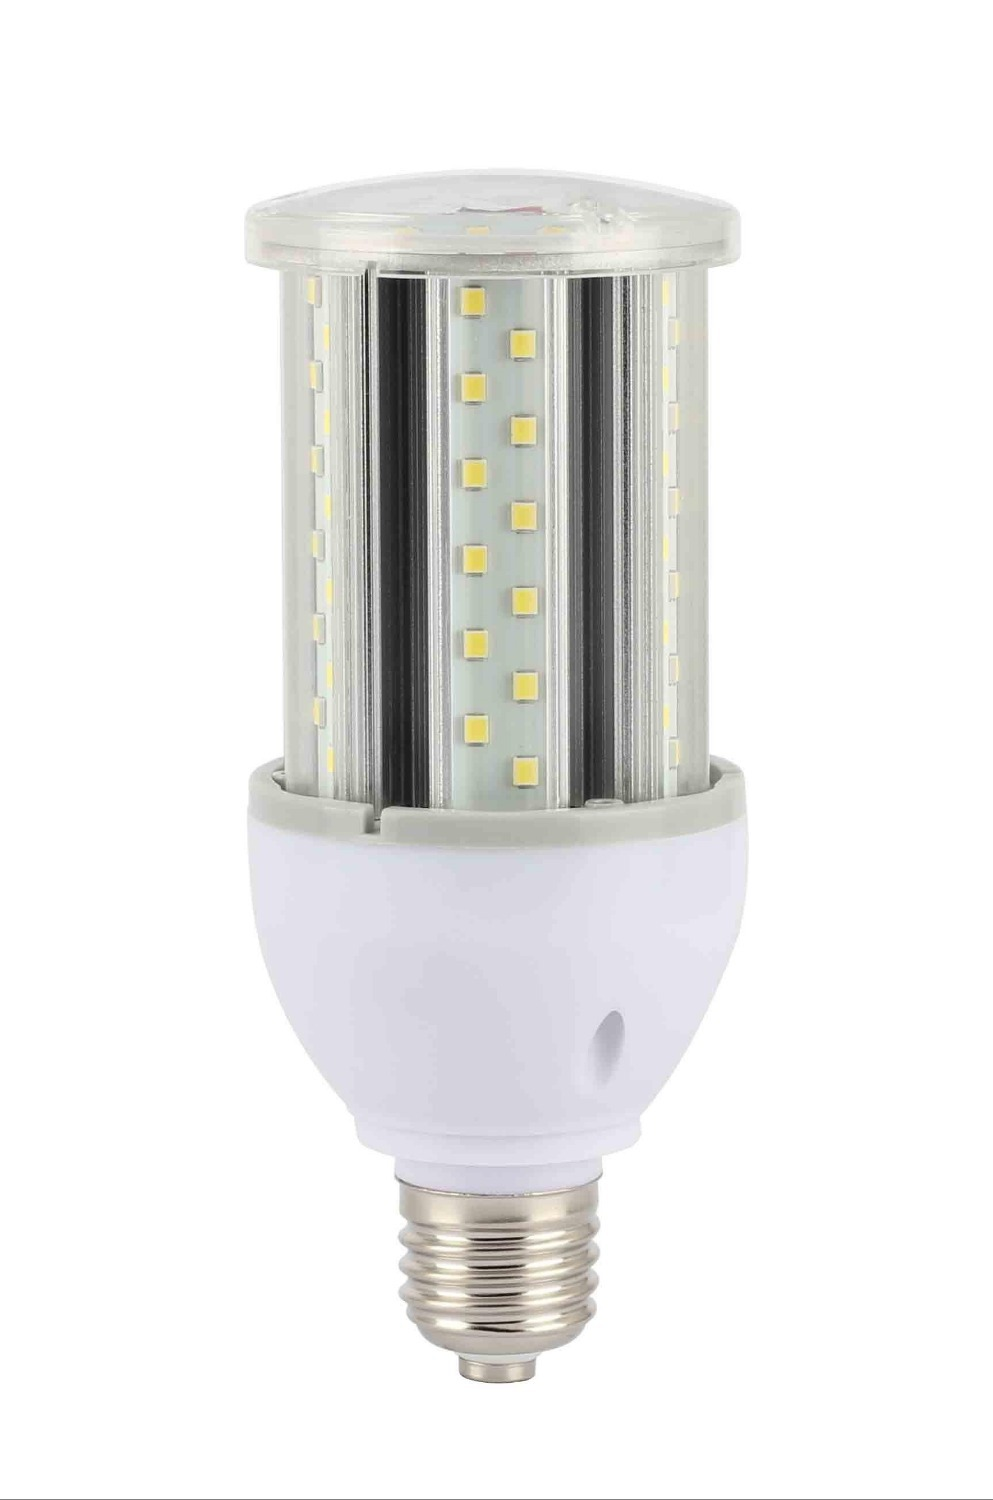 Super Bright E40 LED Corn Lamp 12W Flame Retardant material IP64 Waterproof LED Corn Light Bulb Replace HPS HQL MHL HID Lamps